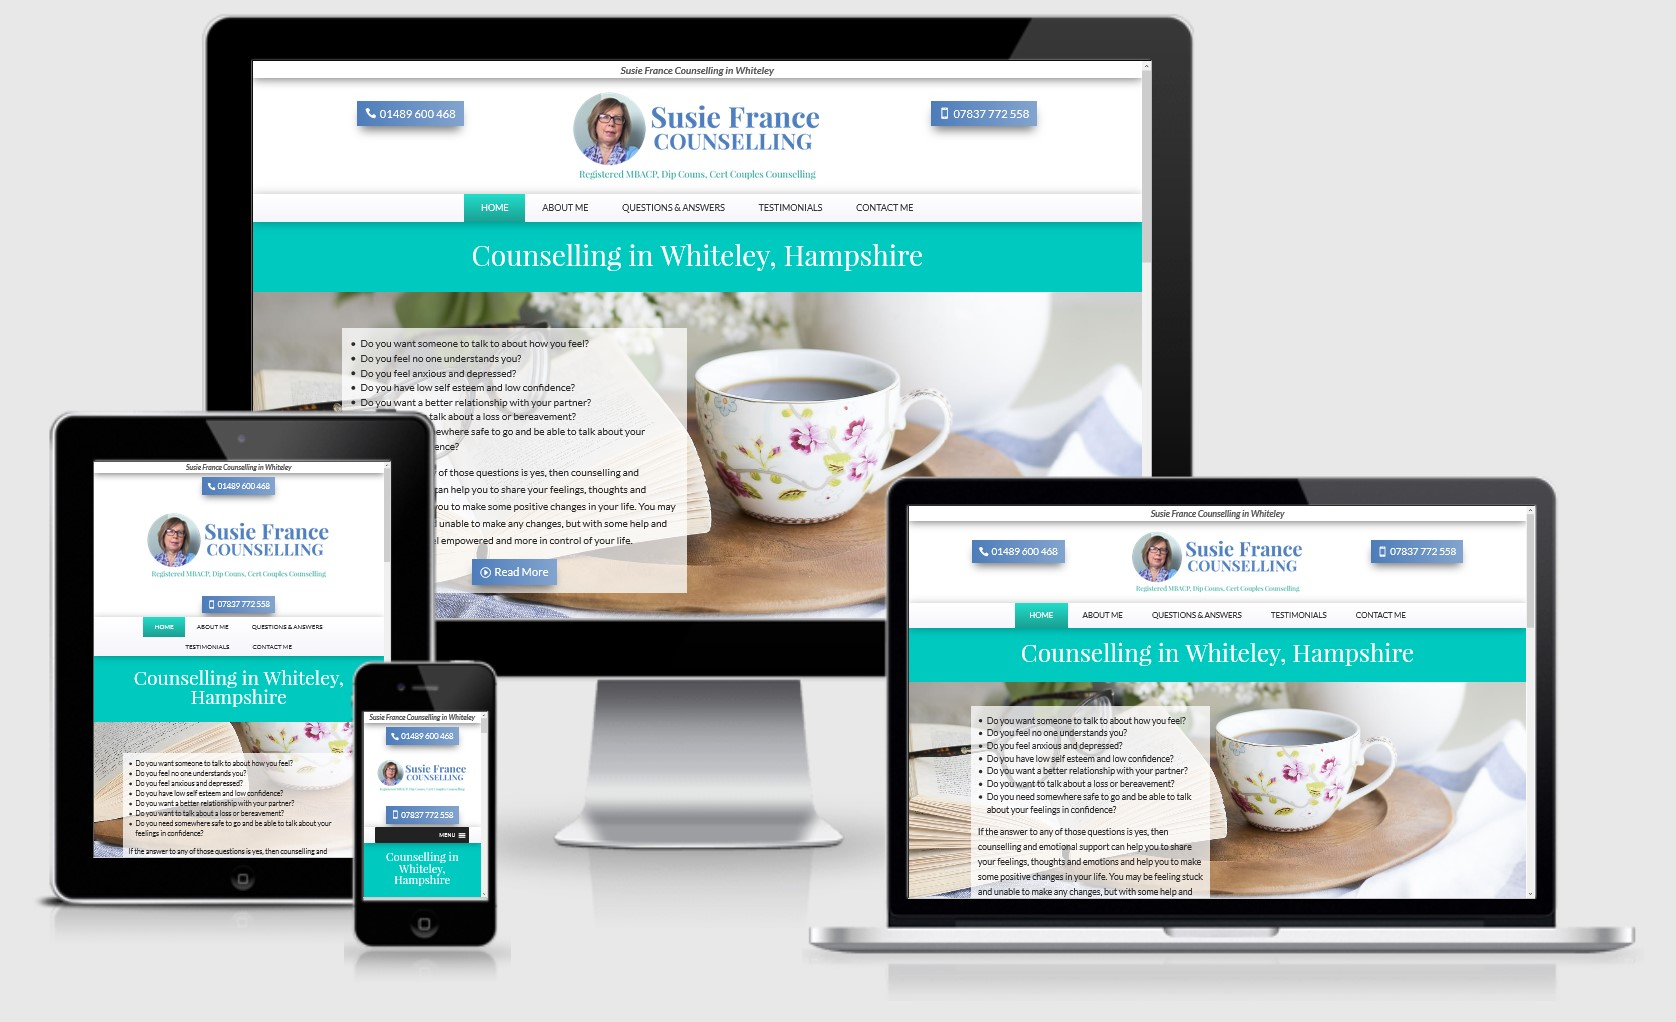 Susie France Counselling Website